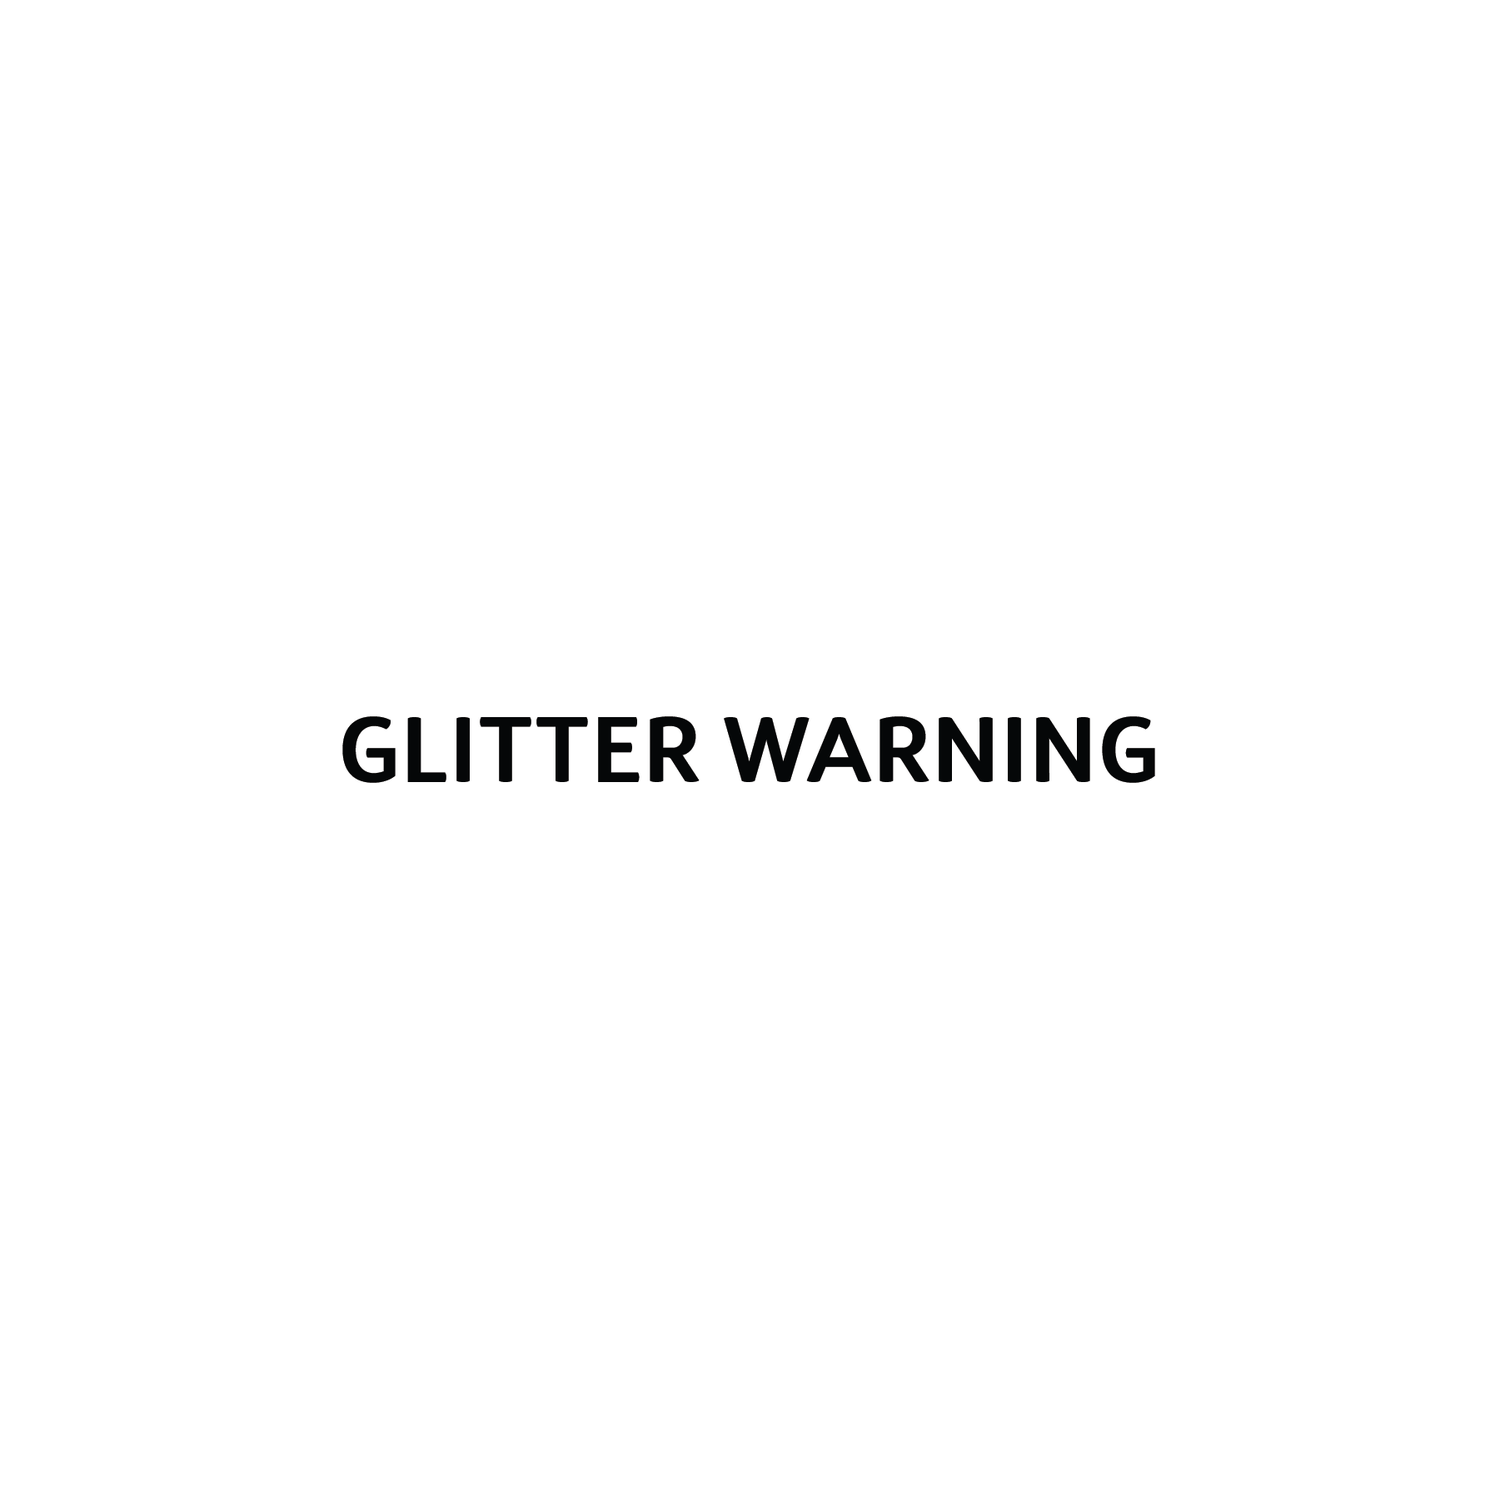 Image of GLITTER WARNING stamp